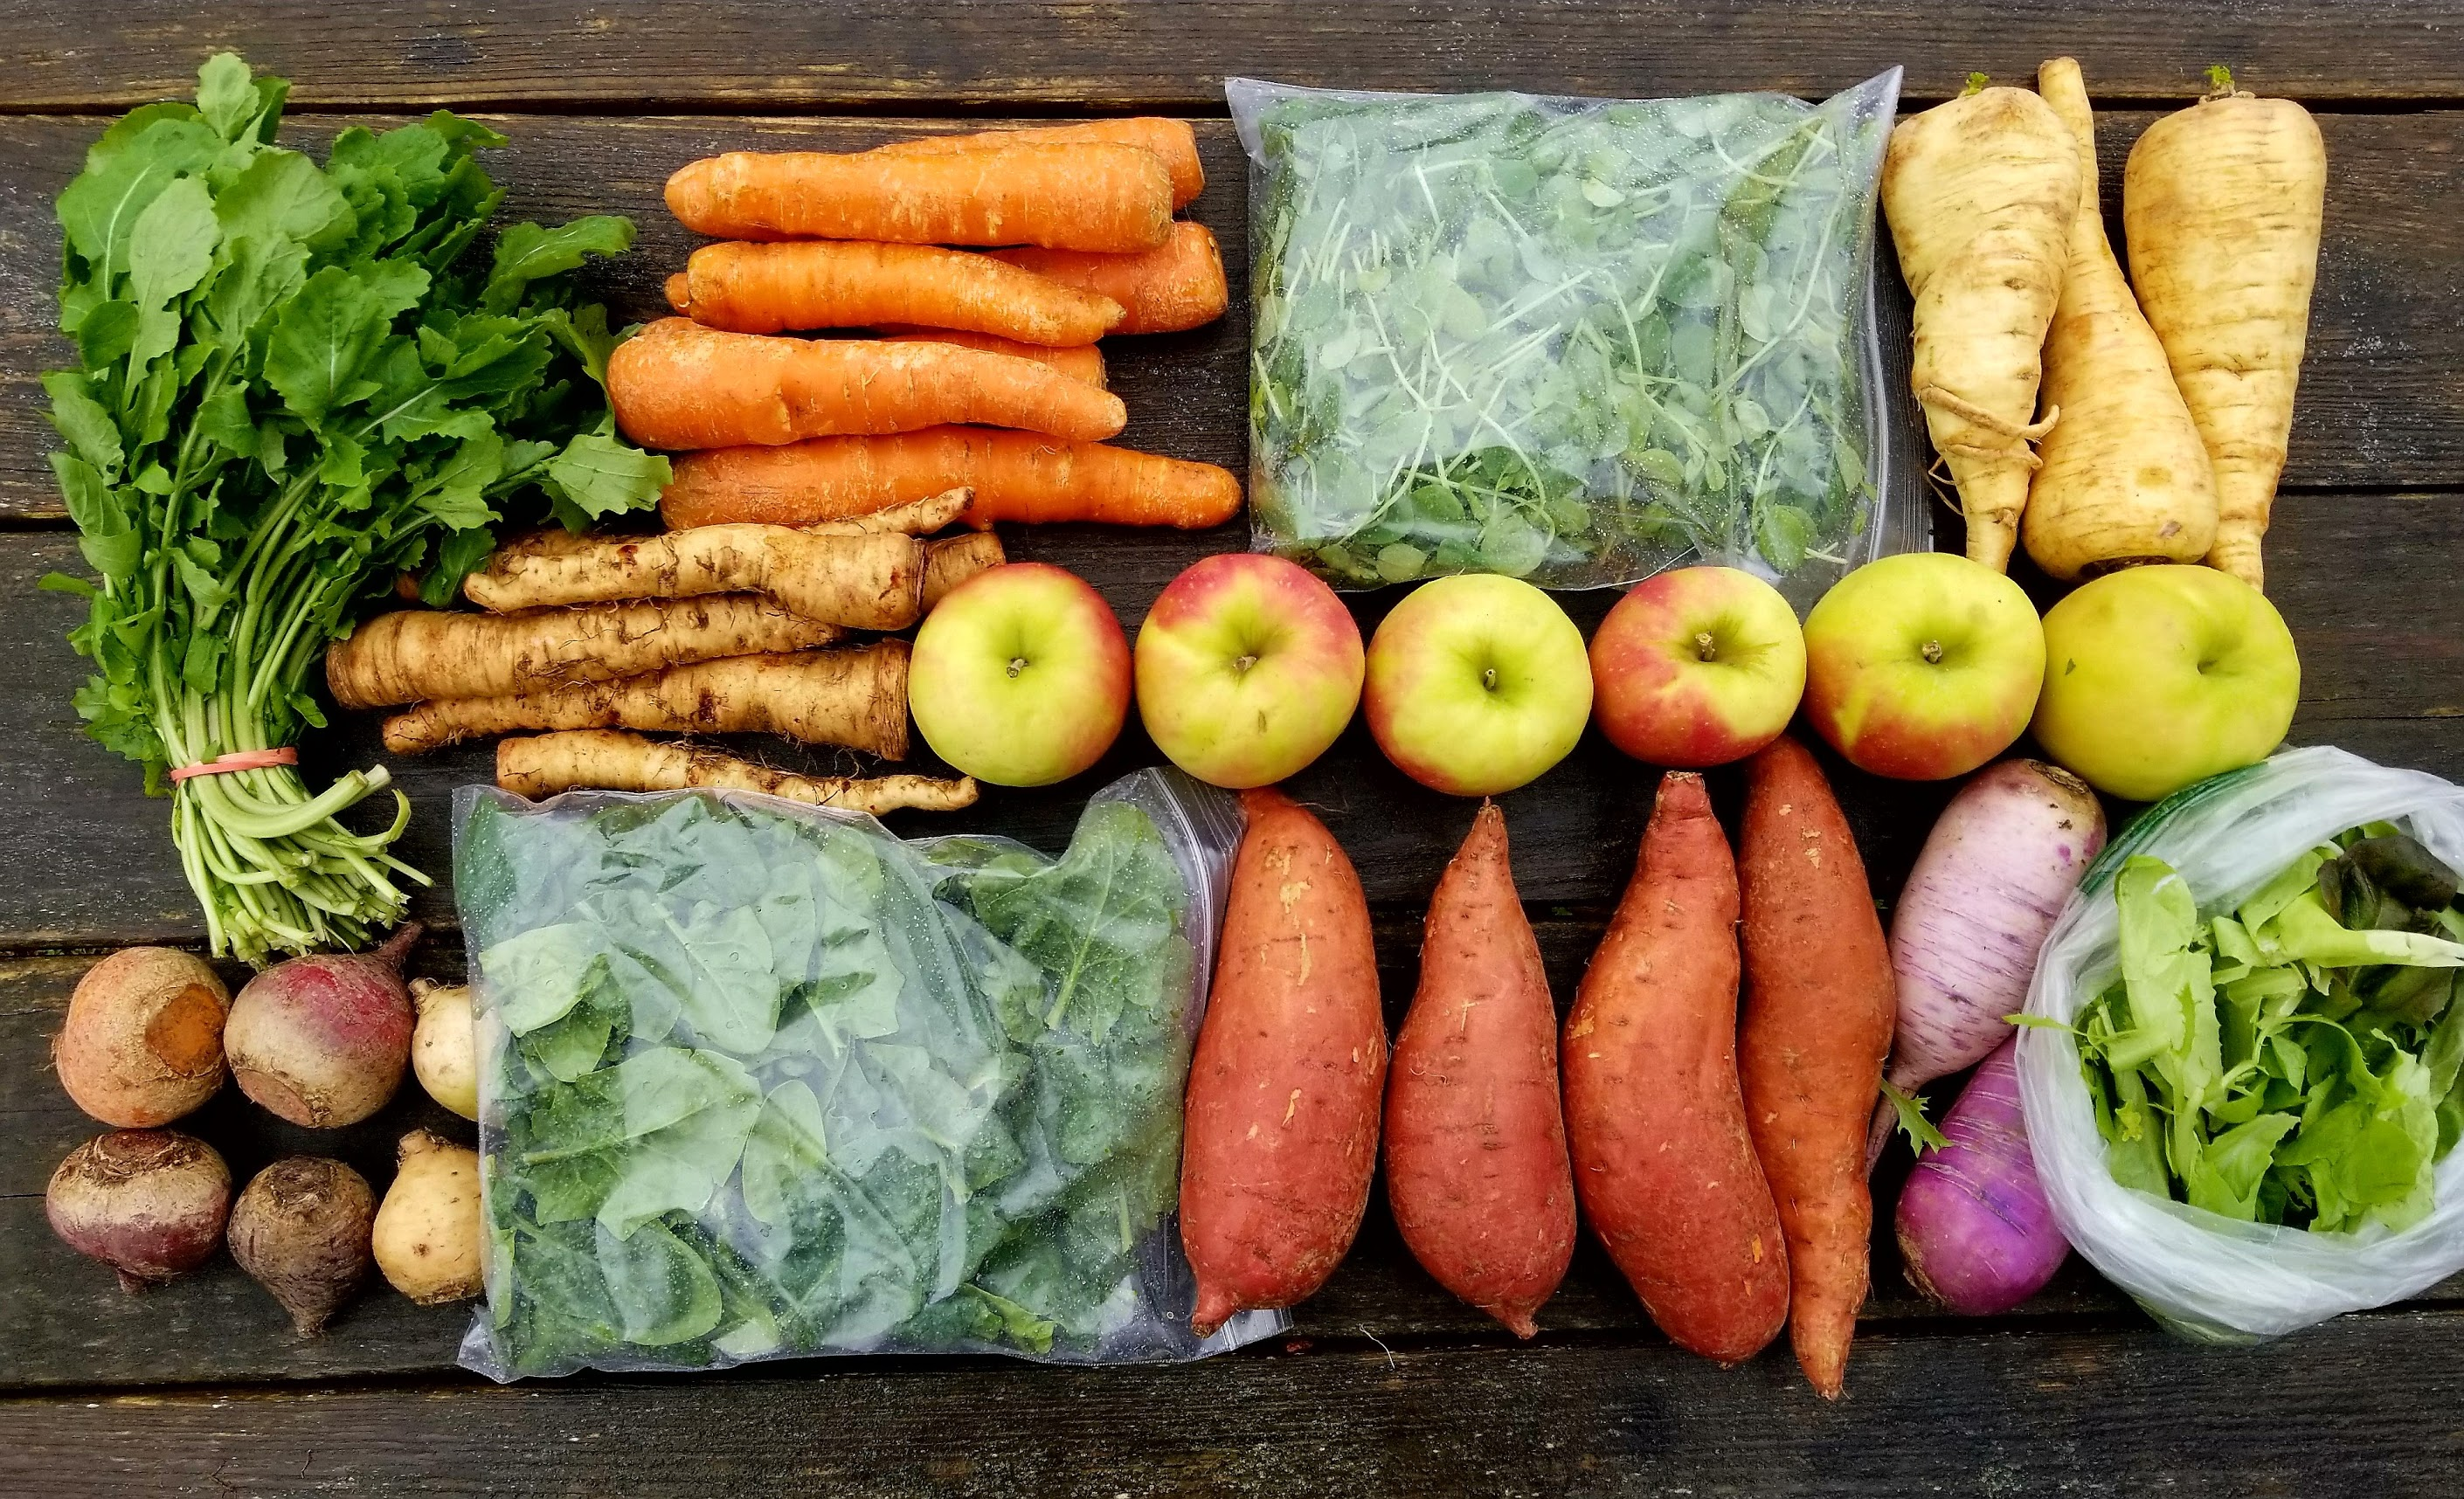 Winter-Spring Produce Share